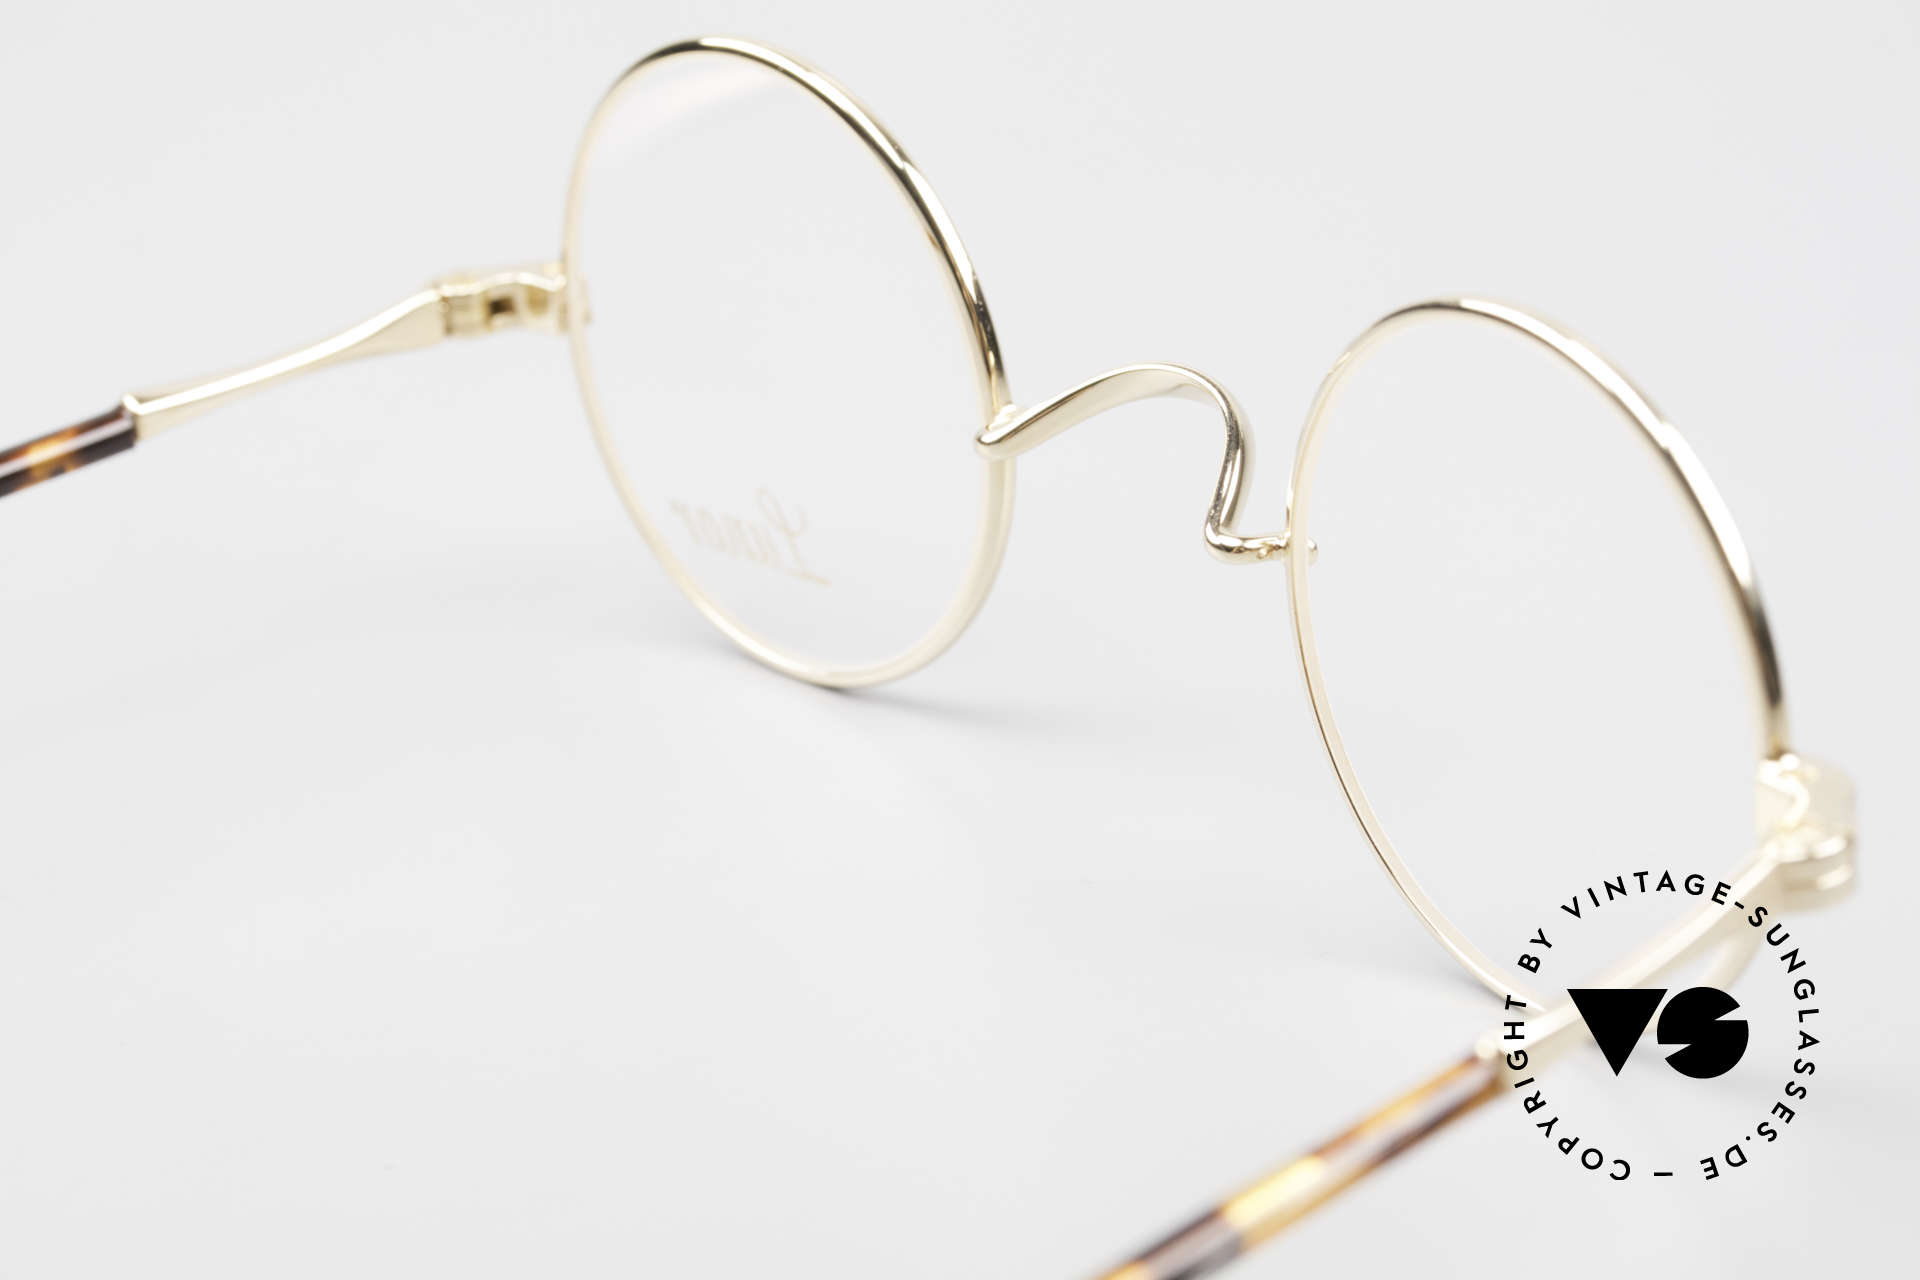 Lunor II A 12 Round Eyeglasses Gold Plated, Size: extra small, Made for Men and Women